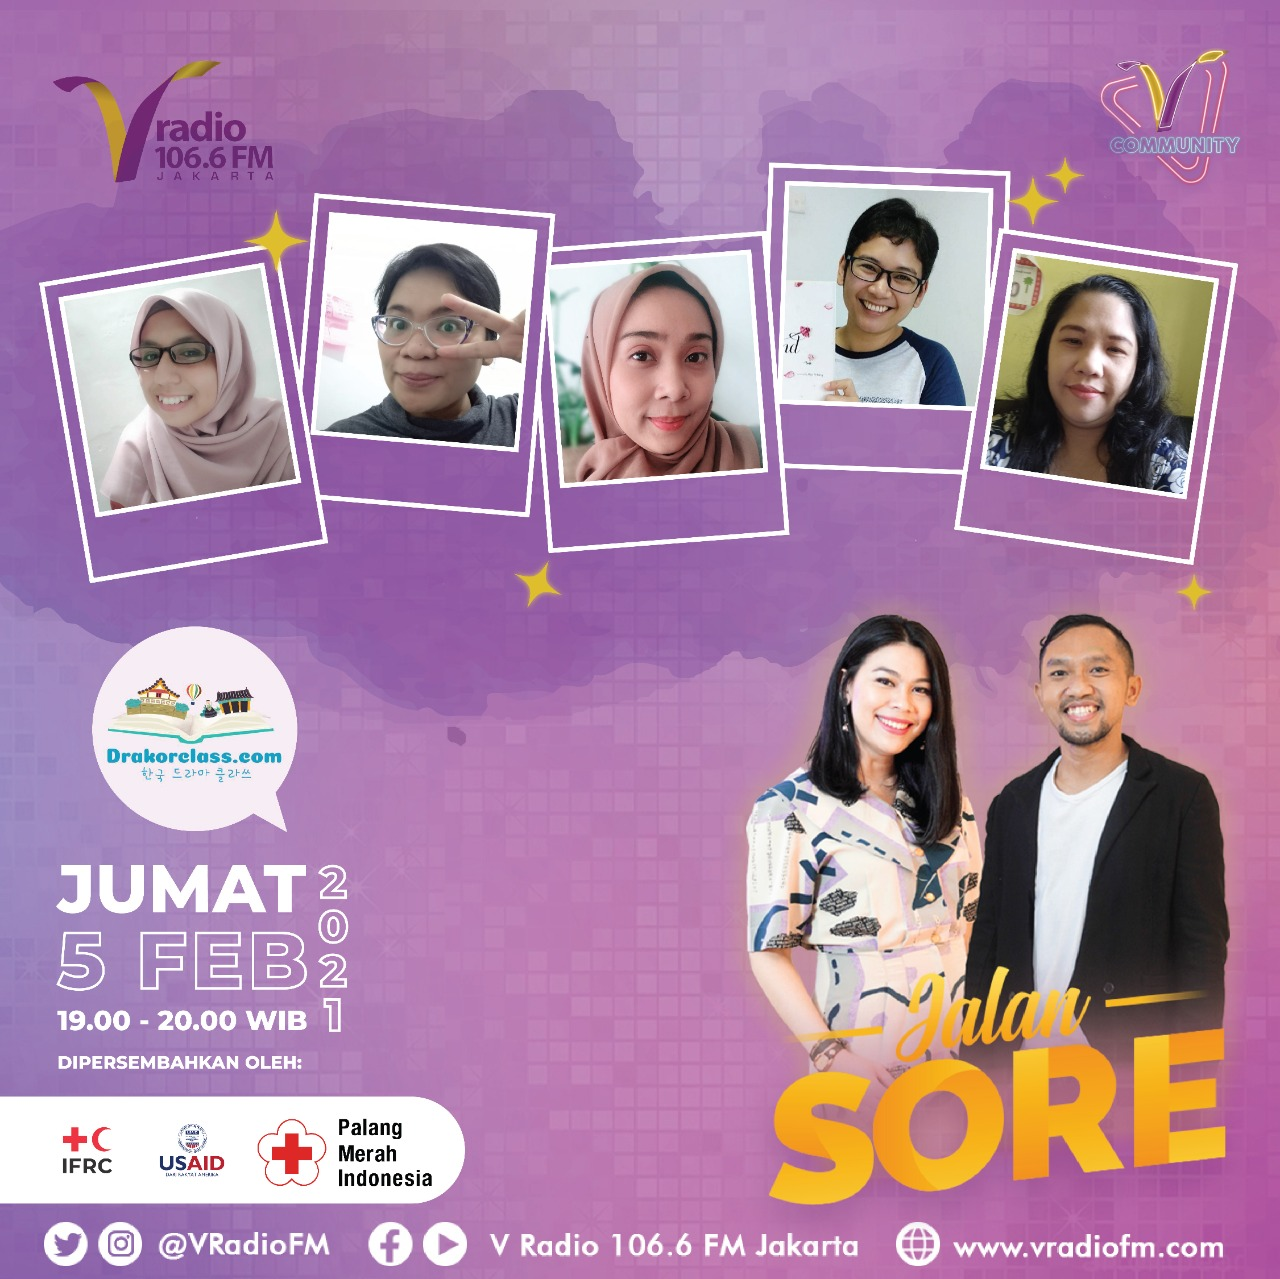 FLYER JALAN SORE VRADIO